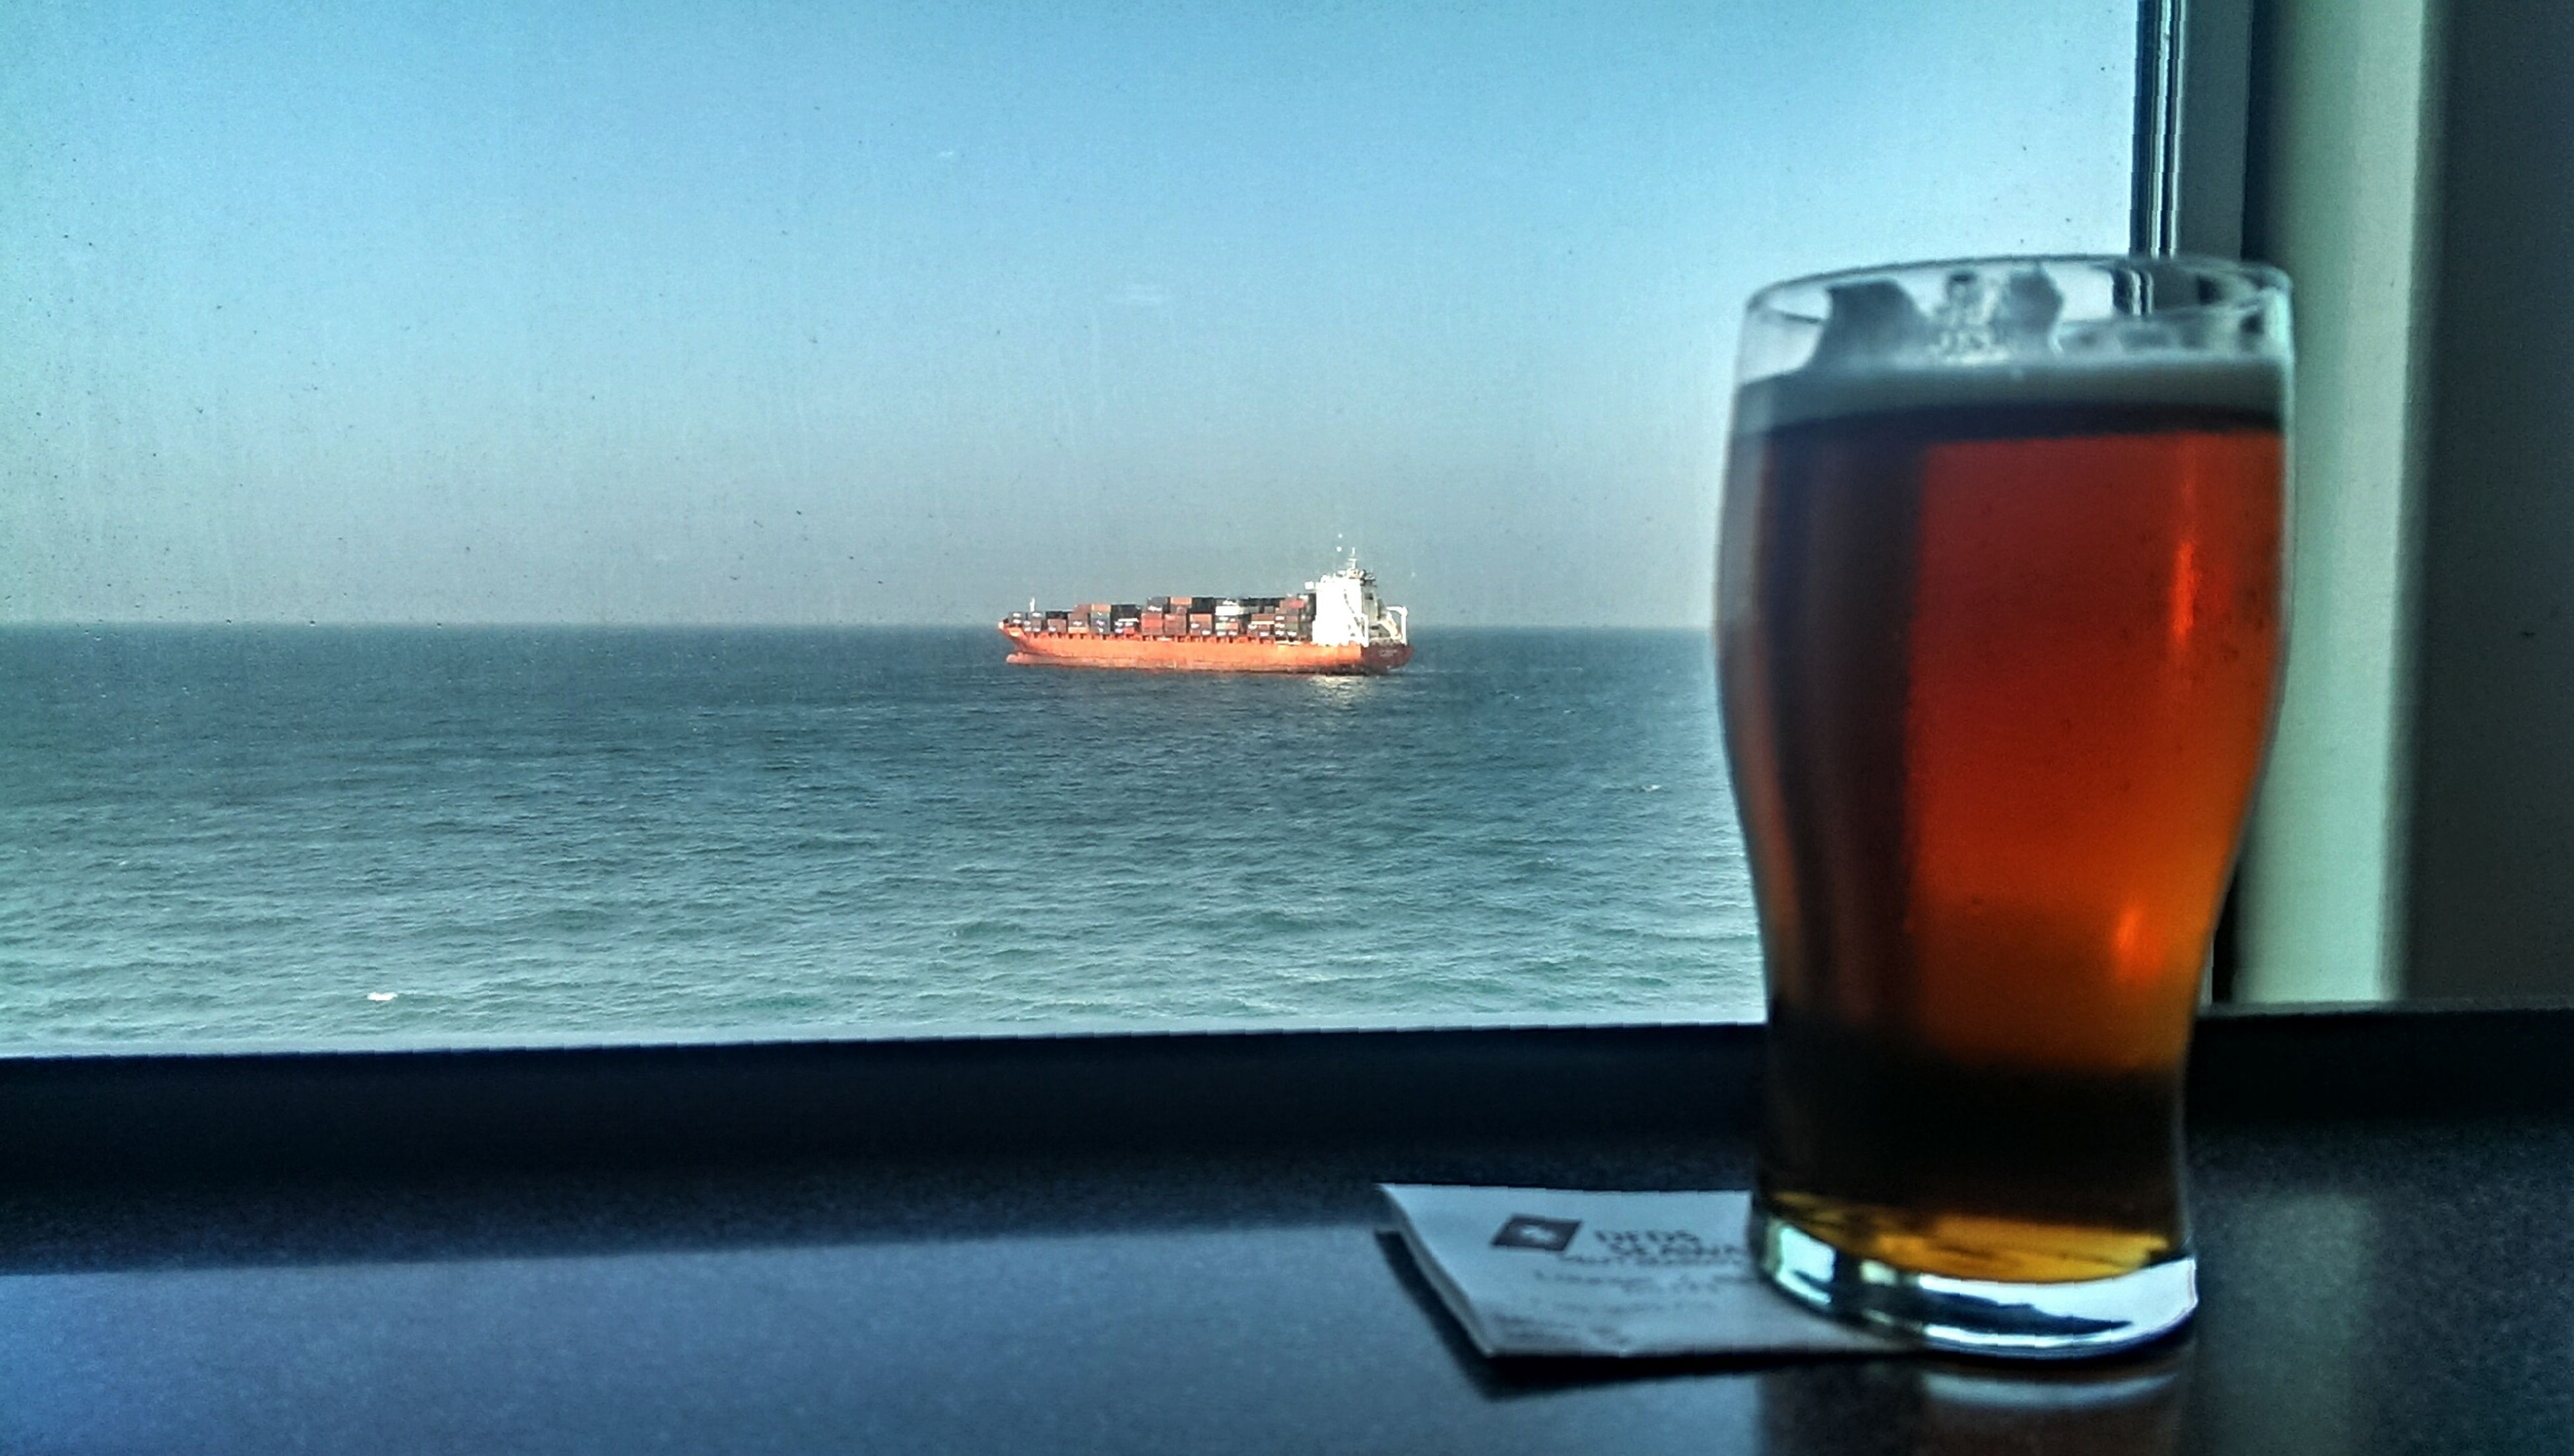 sea, water, horizon over water, drink, refreshment, nautical vessel, food and drink, sky, transportation, mode of transport, boat, table, scenics, transparent, sunlight, window, day, nature, outdoors, drinking glass